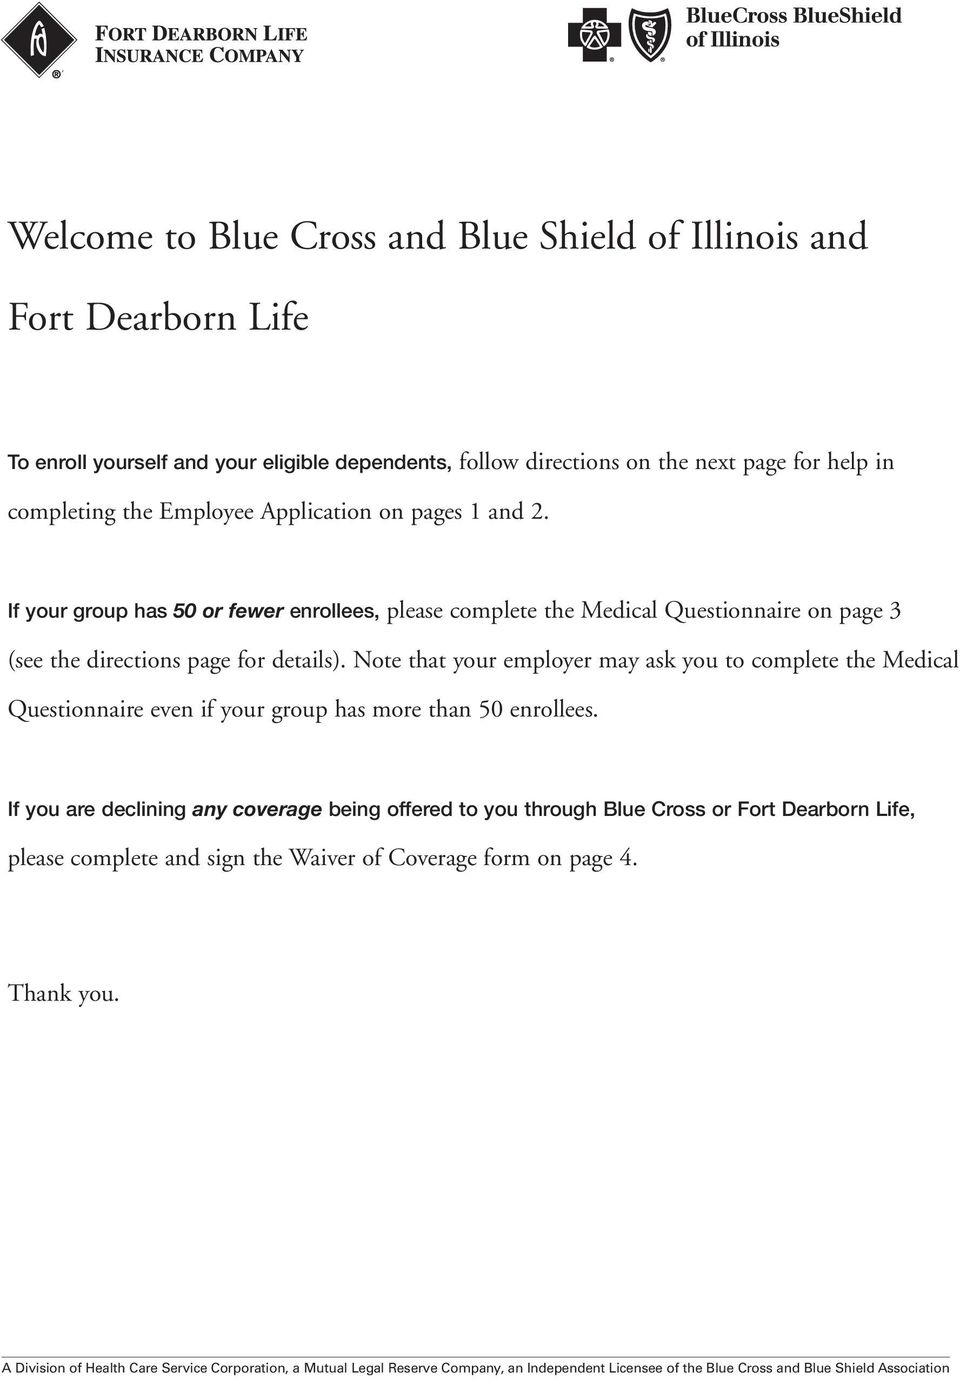 Welcome to Blue Cross and Blue Shield of Illinois and - PDF